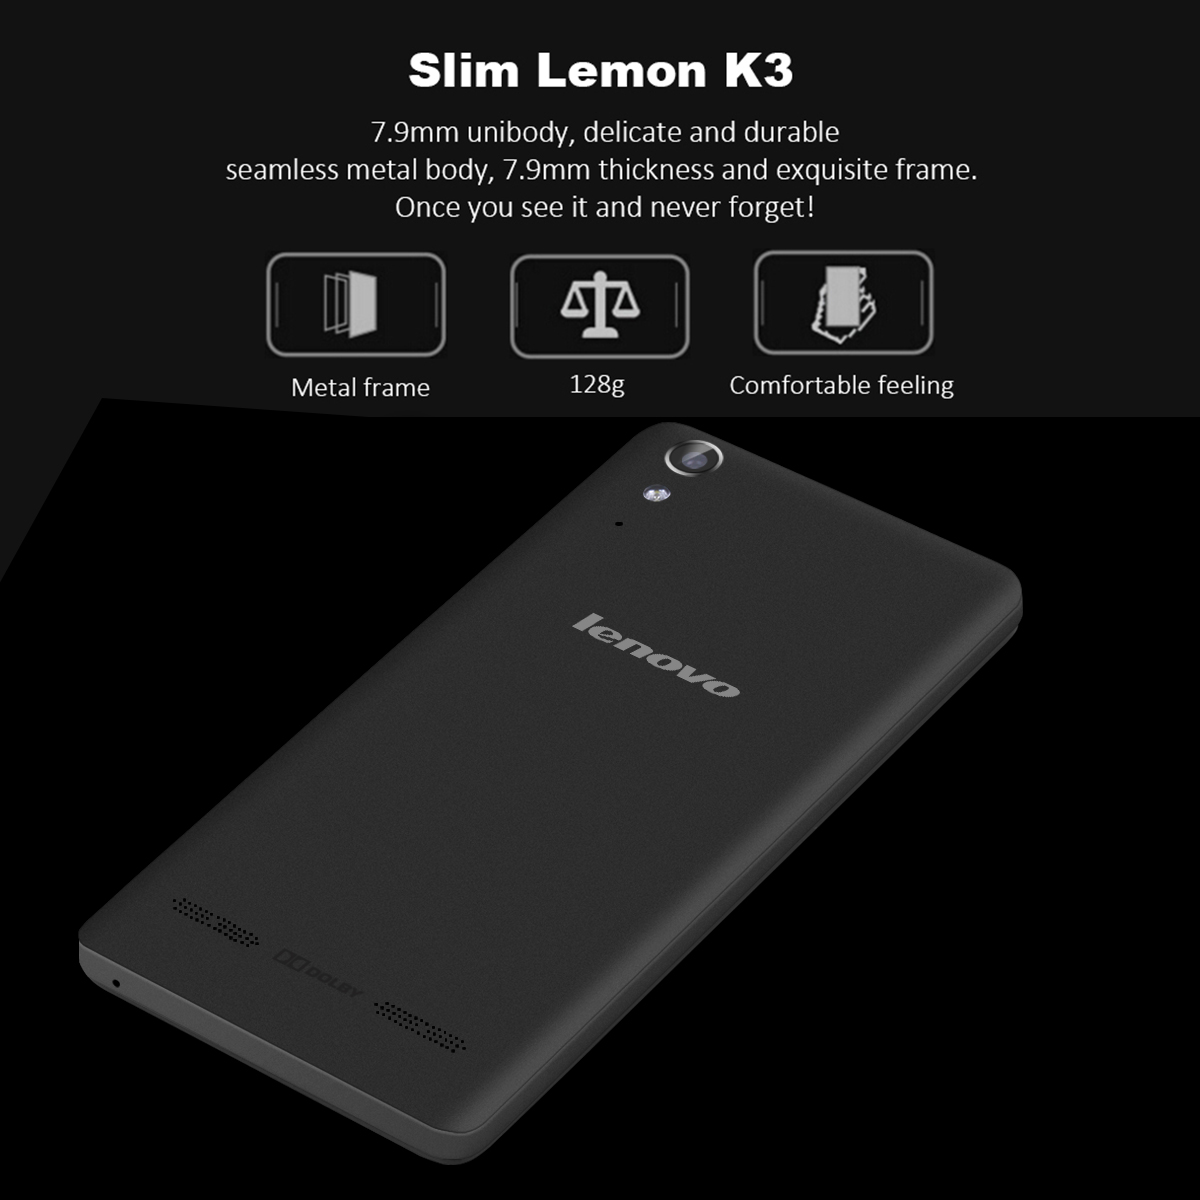 Lenovo LEMON K3 K30-W Android 4.4 Snapdragon MSM8916 Quad Cores 1.2GHz 5.0\\'\\' Multi-touch screen HD 1280*720 pixels RAM 1GB + ROM 16GB 8M (B camera) & 2M (F camera) 2300mAh GSM 900/1800/1900MHz W